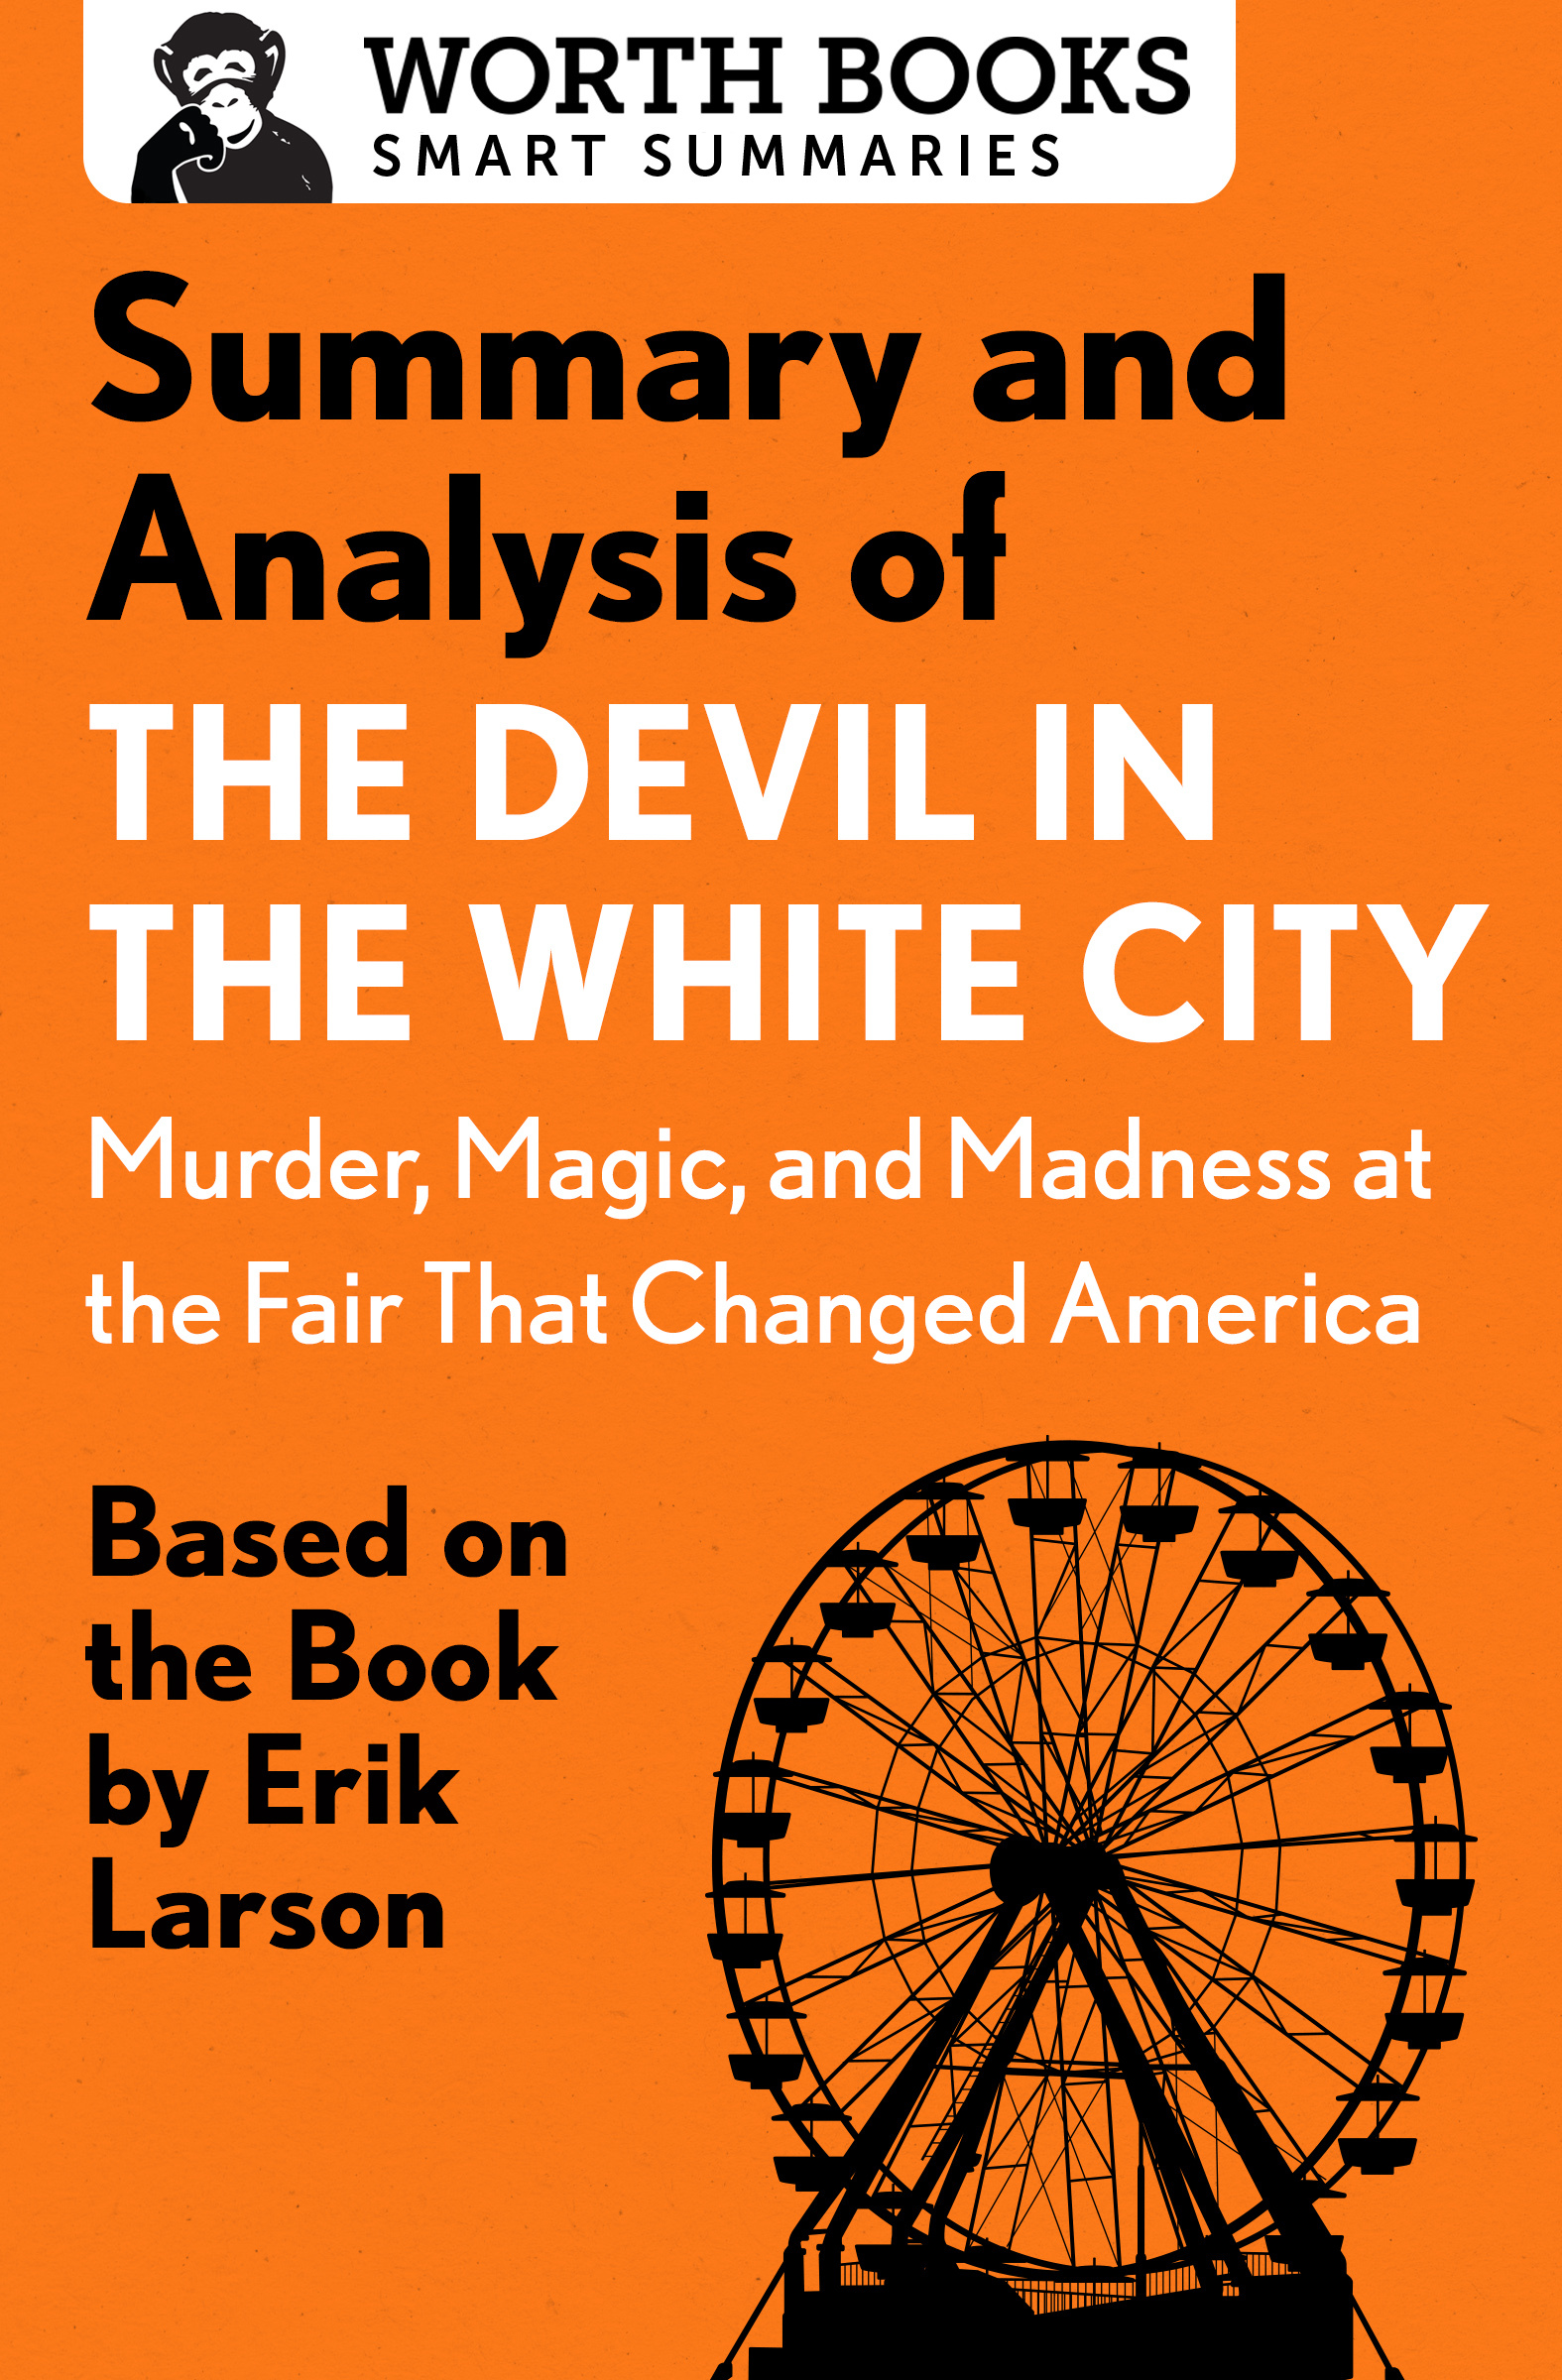 Summary and Analysis of The Devil in the White City: Murder, Magic, and Madness at the Fair That Changed America: Based on the Book by Erik Larson